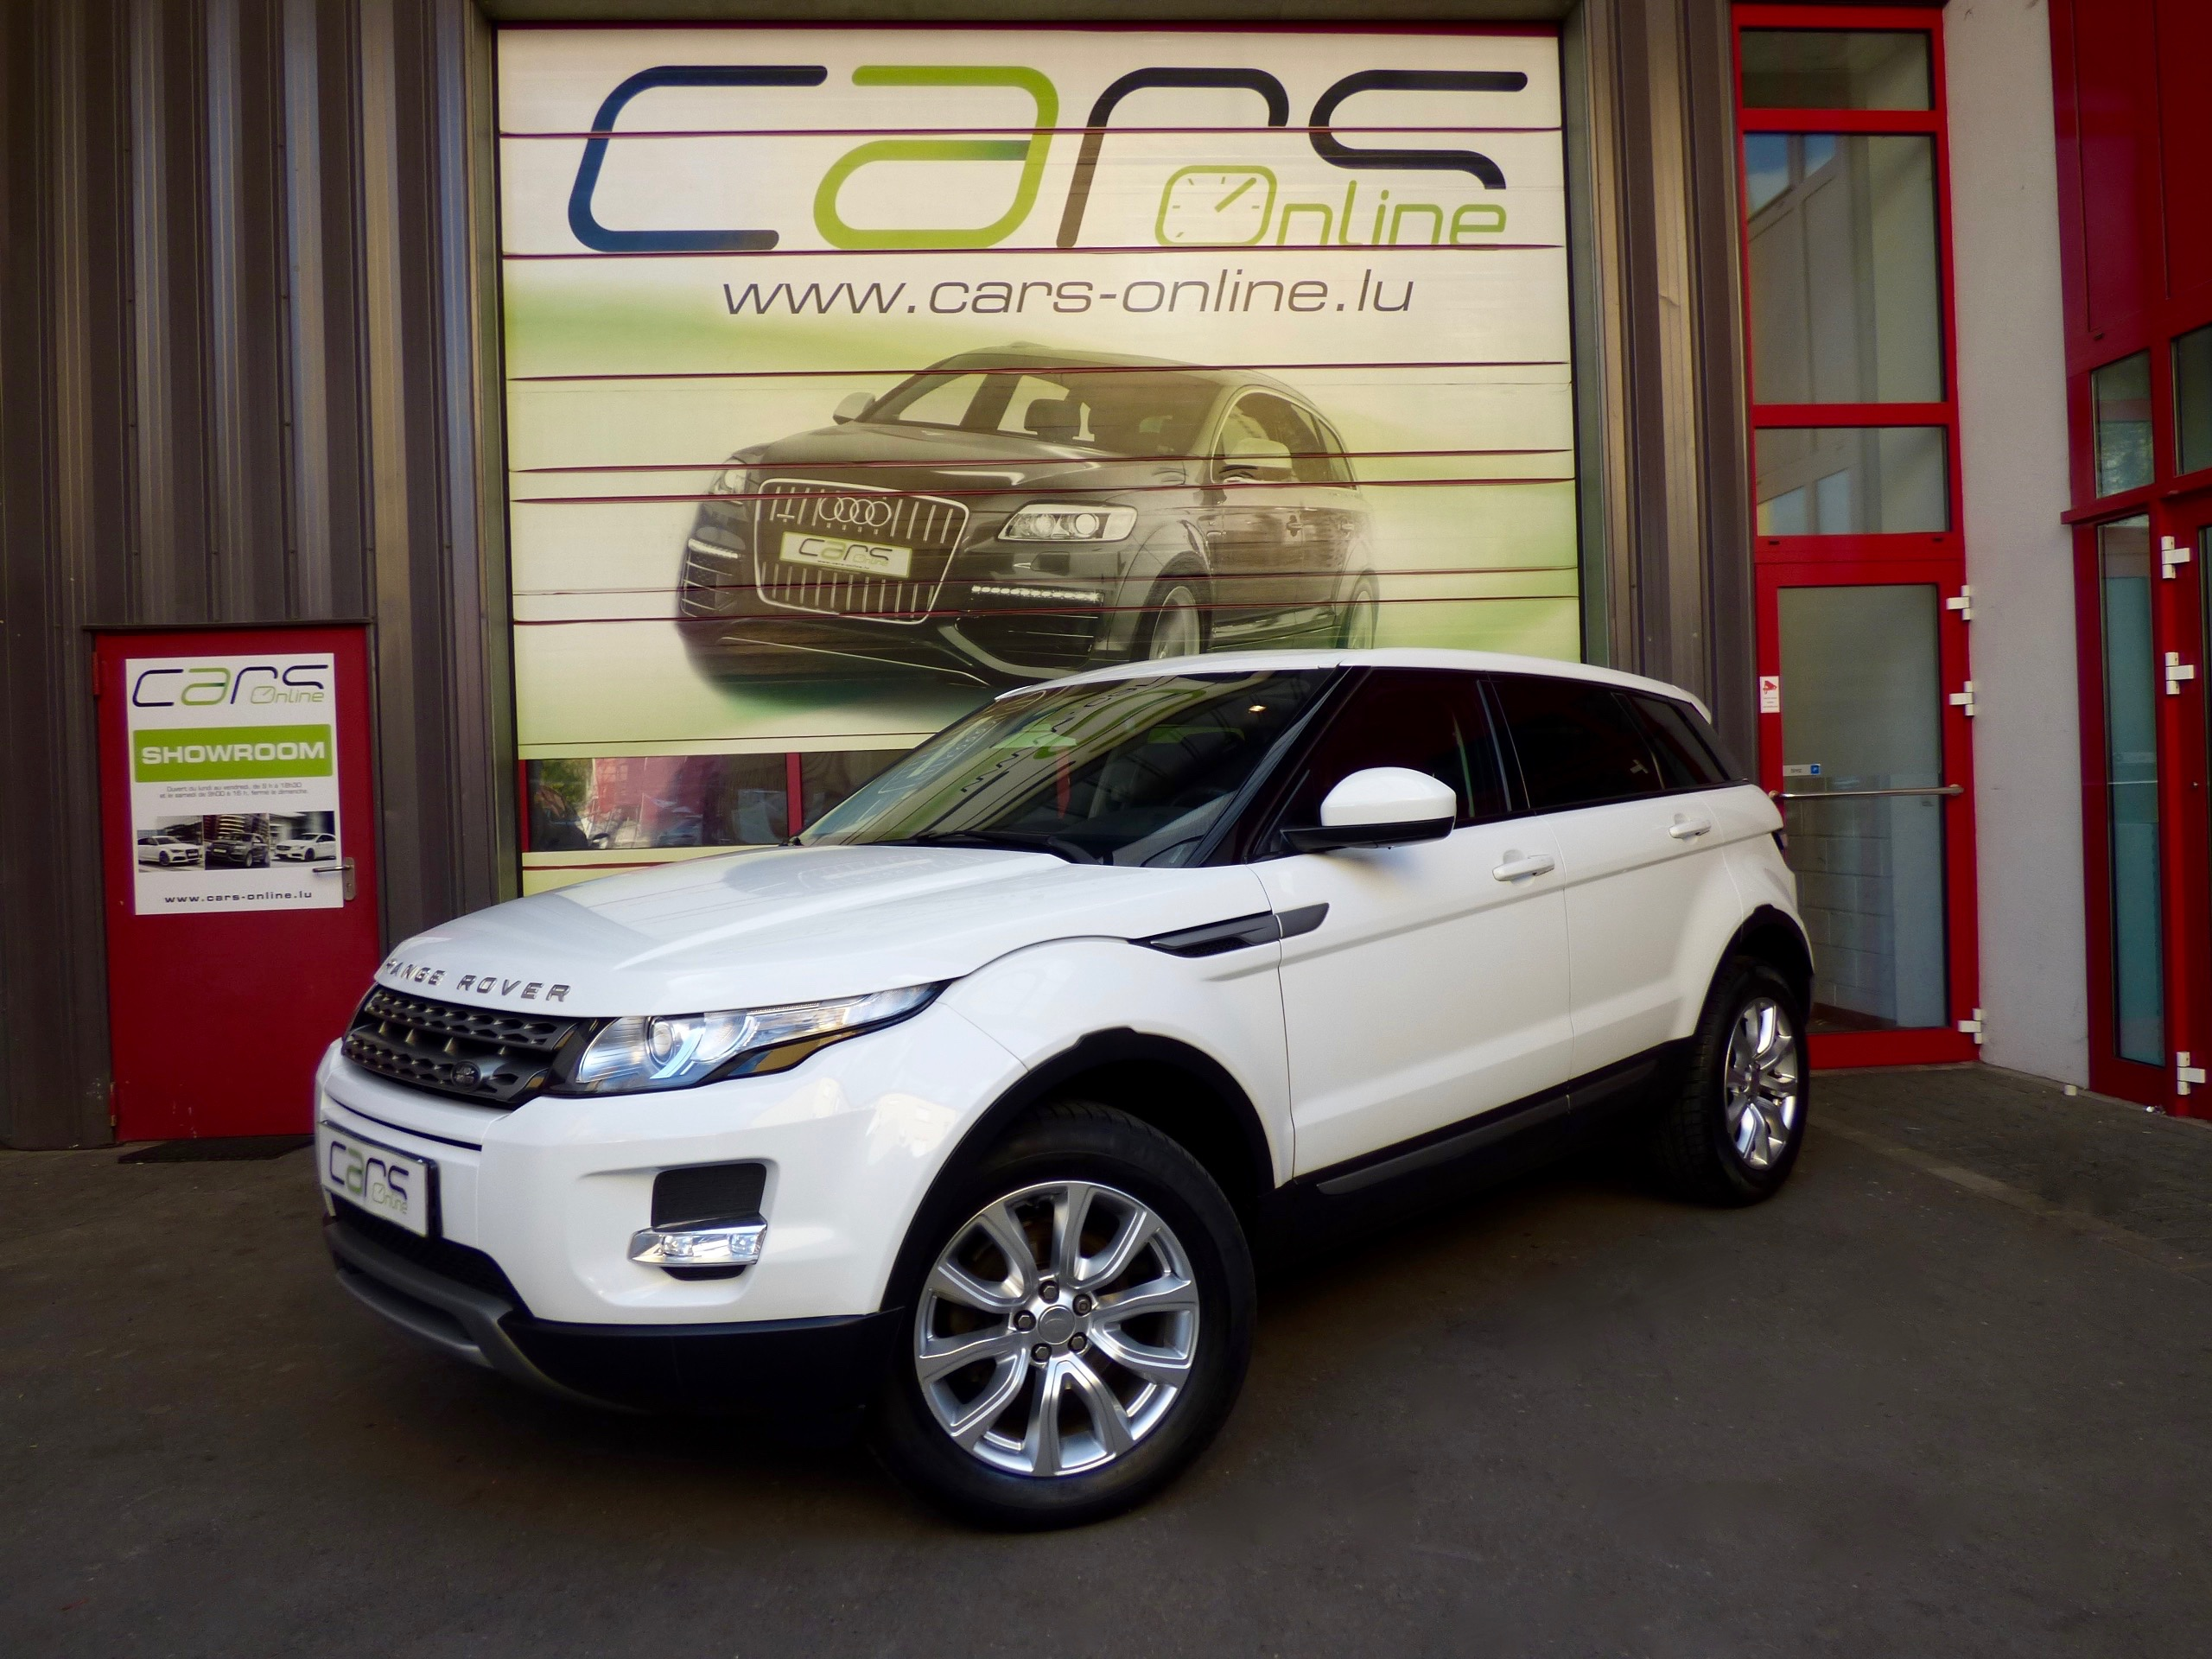 voiture land rover range rover evoque td4 prestige 4x4 m6 occasion diesel 2014 96500 km. Black Bedroom Furniture Sets. Home Design Ideas